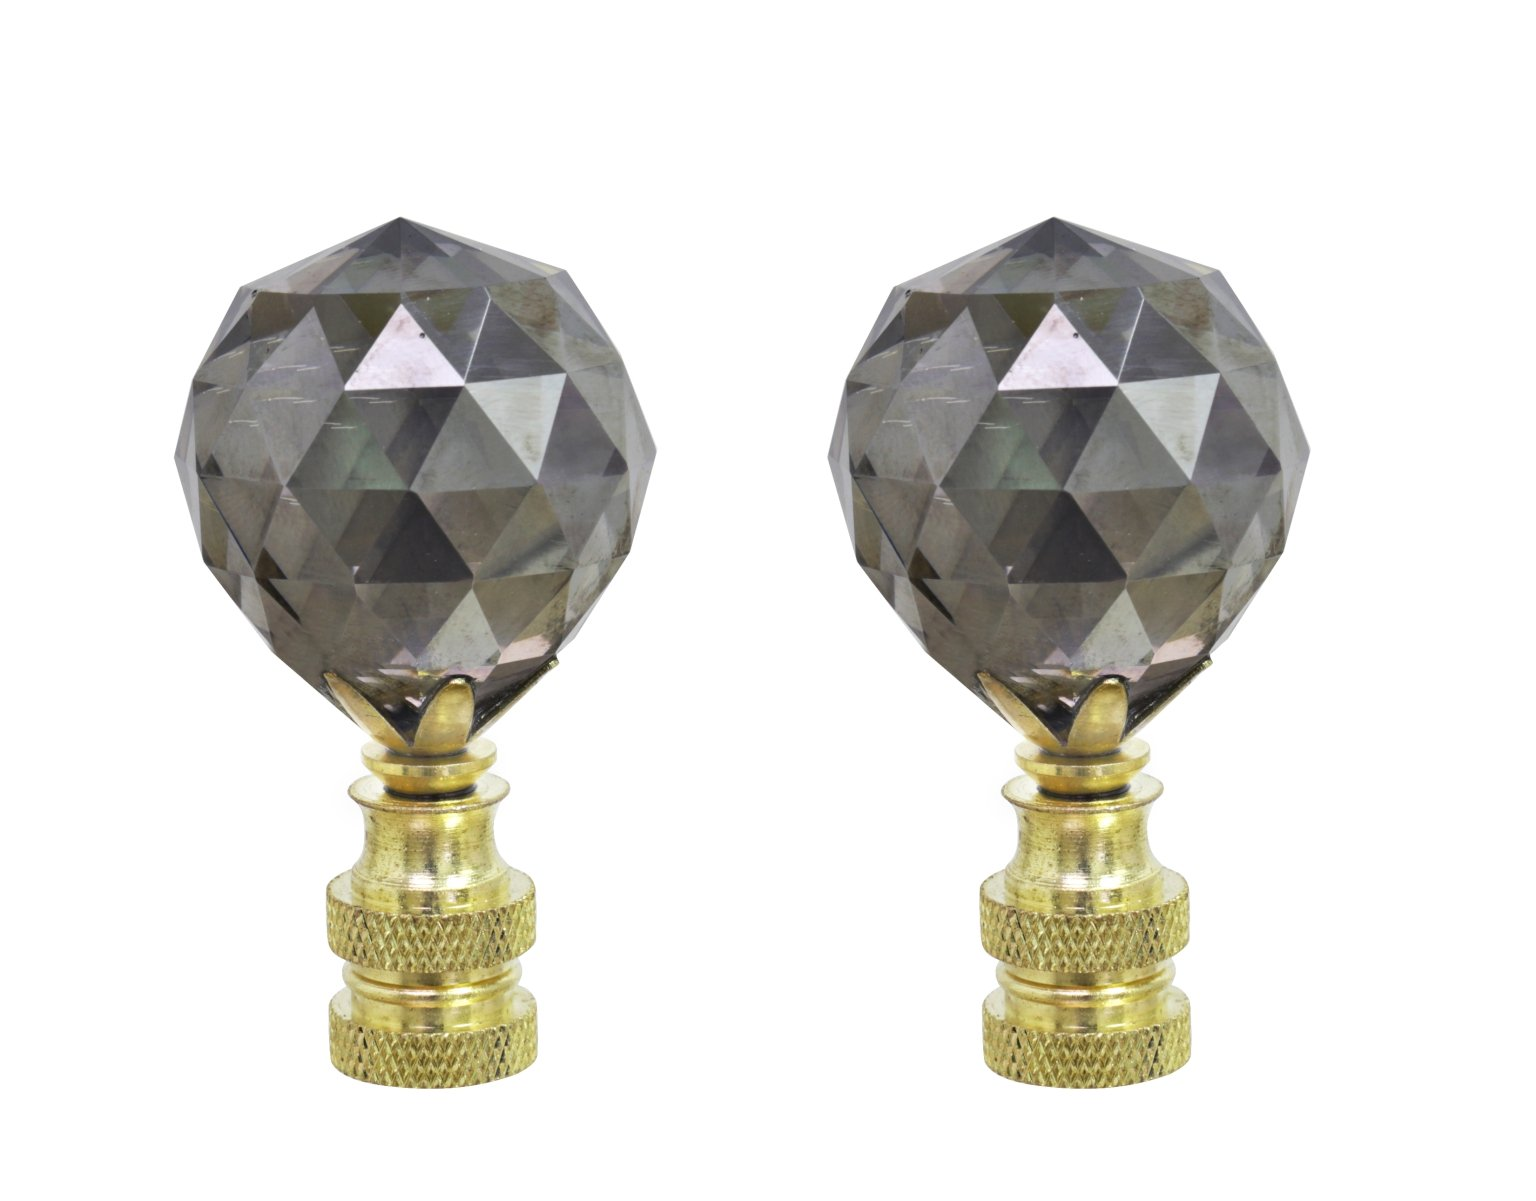 Aspen Creative 24007-42 Charcoal Grey Faceted Crystal Lamp Finial in Brass Plated Finish, 2 1/4'' Tall (2 Pack),